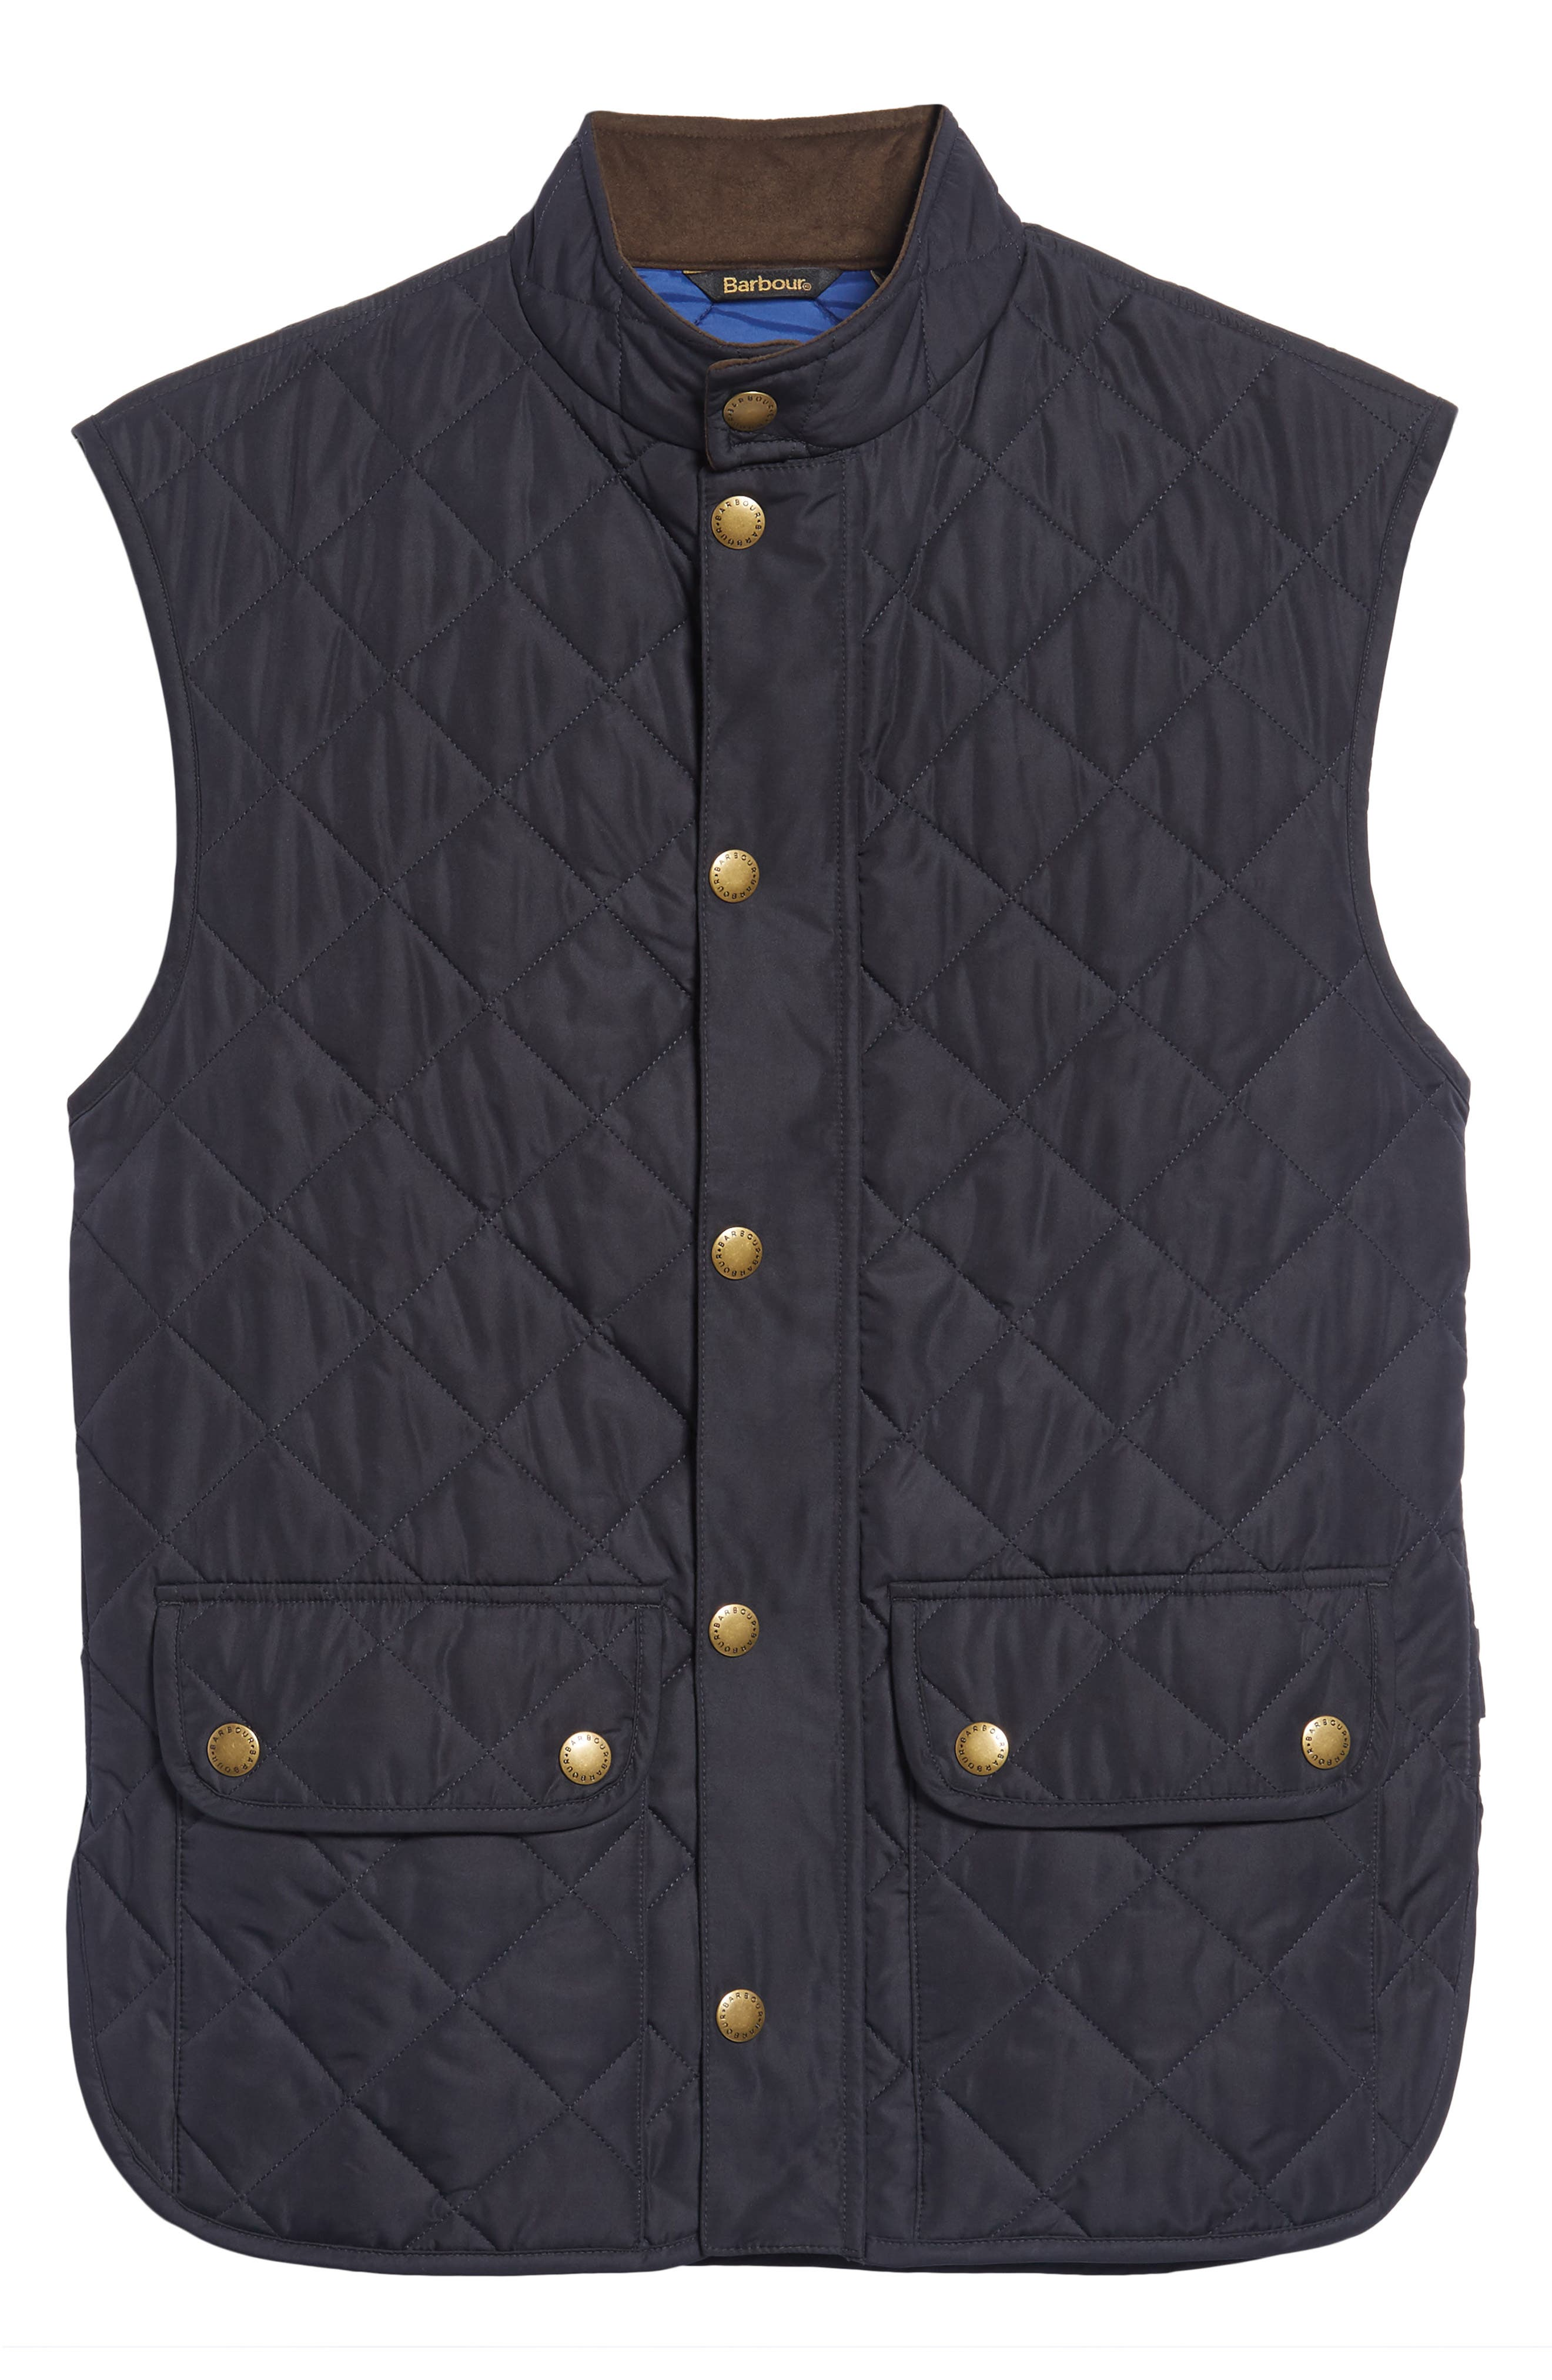 Lowerdale Quilted Vest,                             Main thumbnail 1, color,                             Navy/ Atlantic